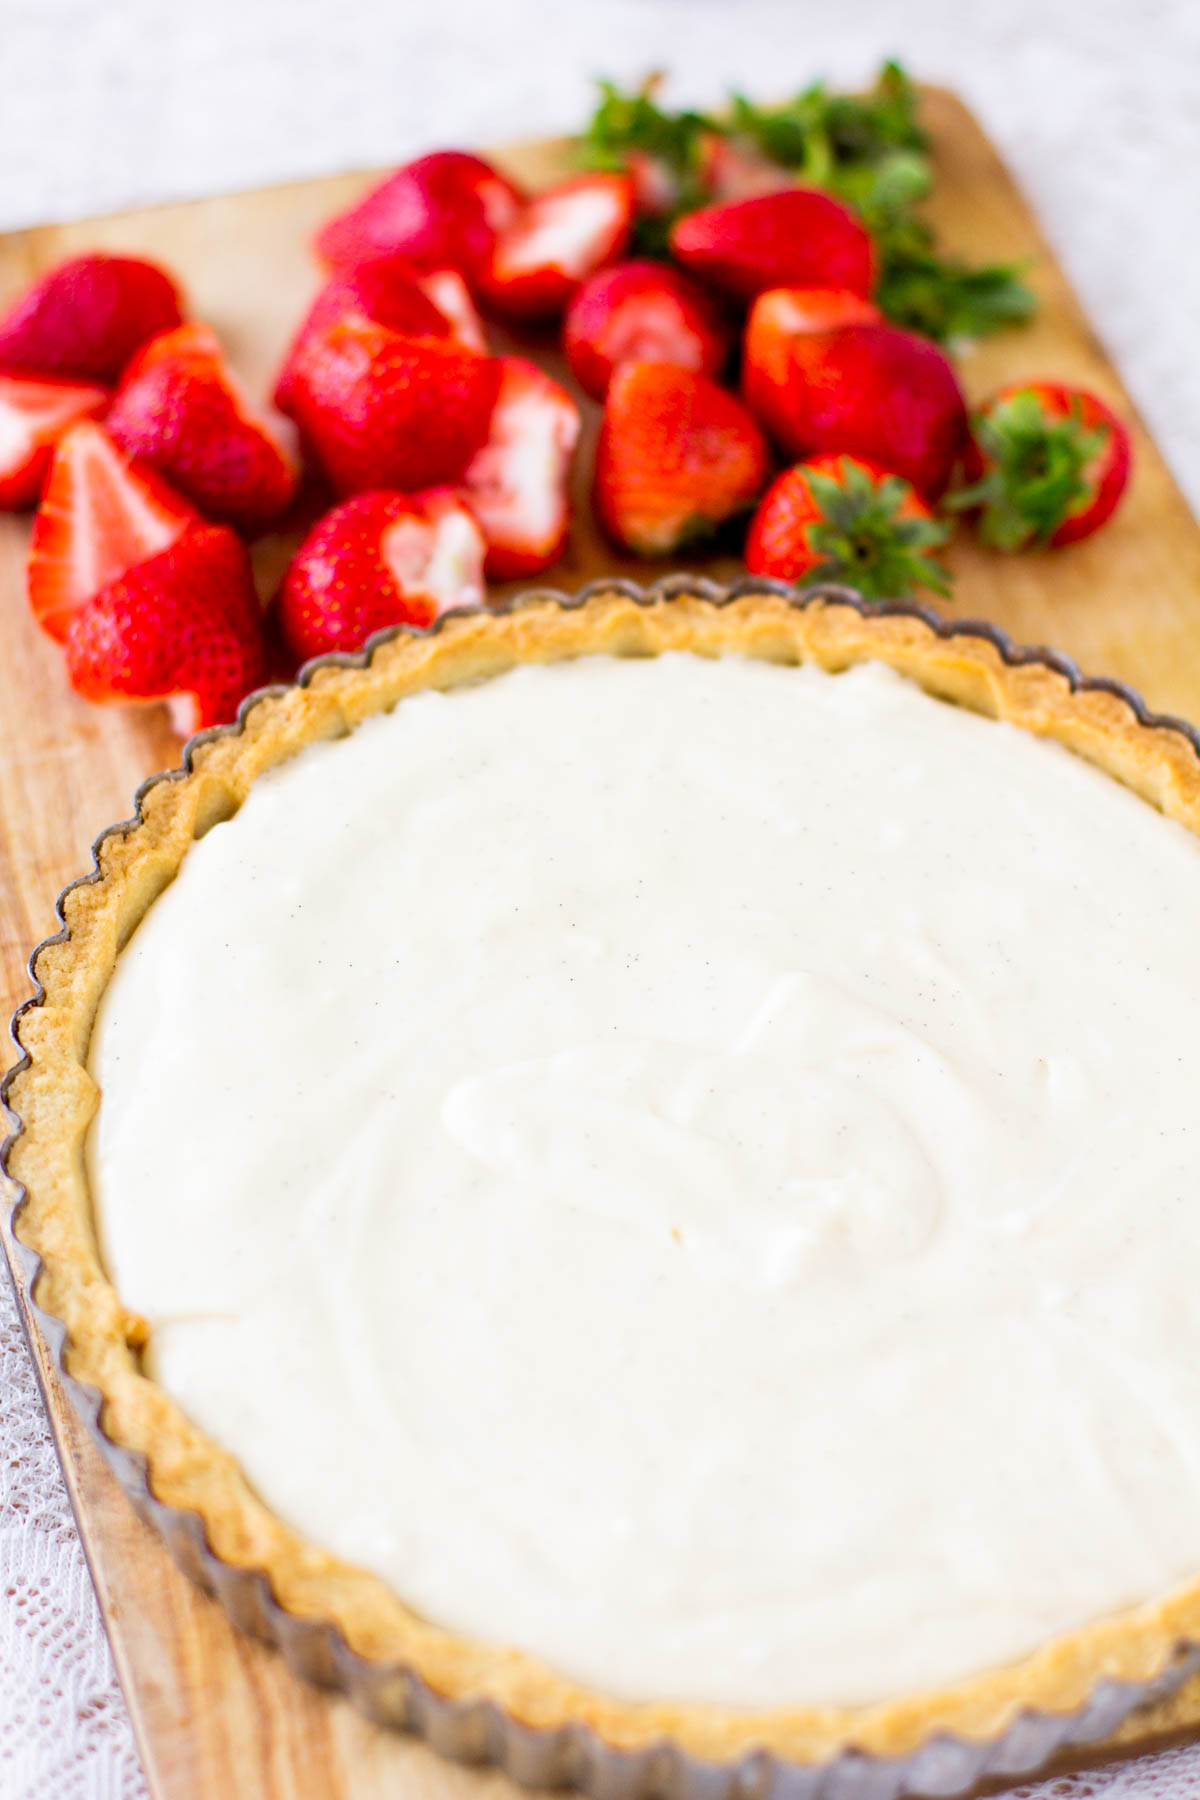 Creme patisserie with whipped cream and strawberries